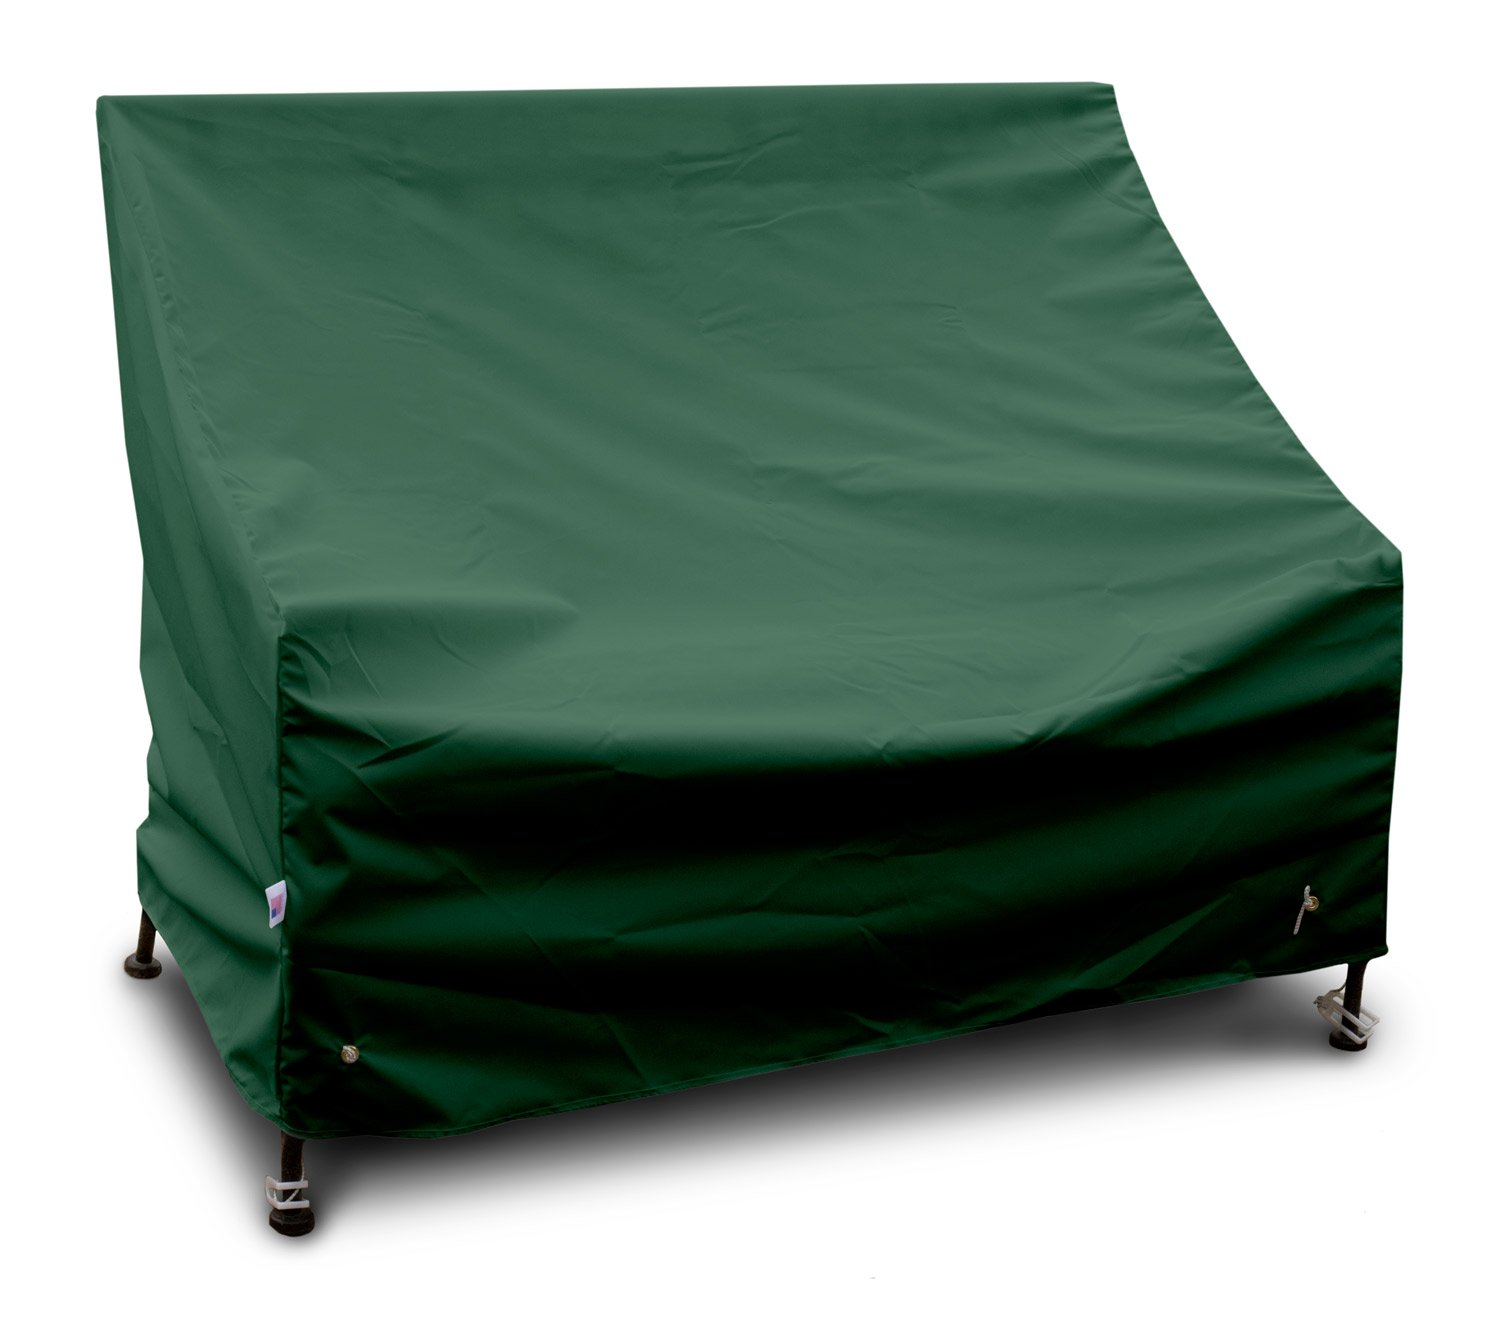 KoverRoos Weathermax 64203 5-Feet Bench/Glider Cover, 63-Inch Width by 28-Inch Diameter by 37-Inch Height, Forest Green by KOVERROOS